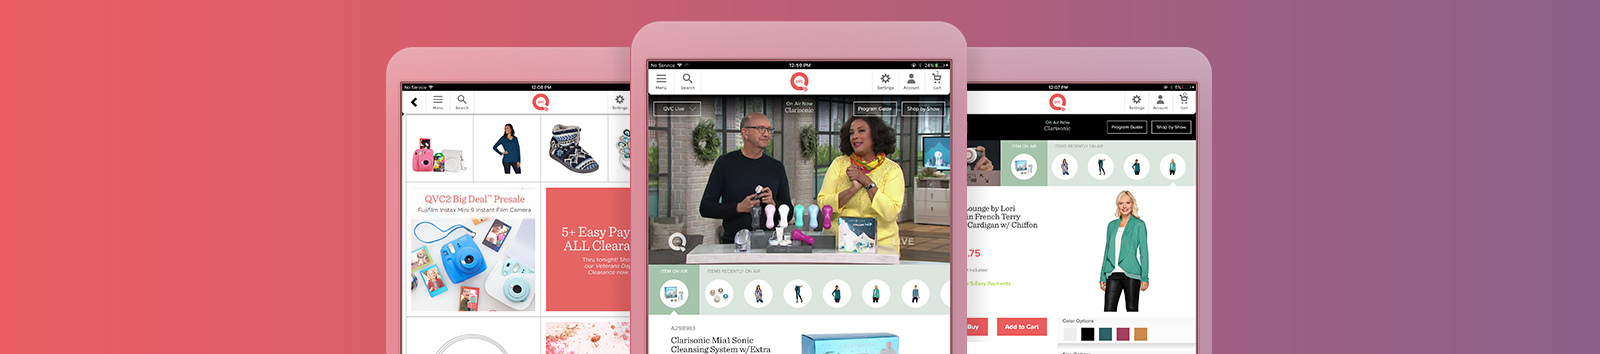 Get More of What You Love! Download the QVC for iPad® app for free. Requires iOS 7 or higher.